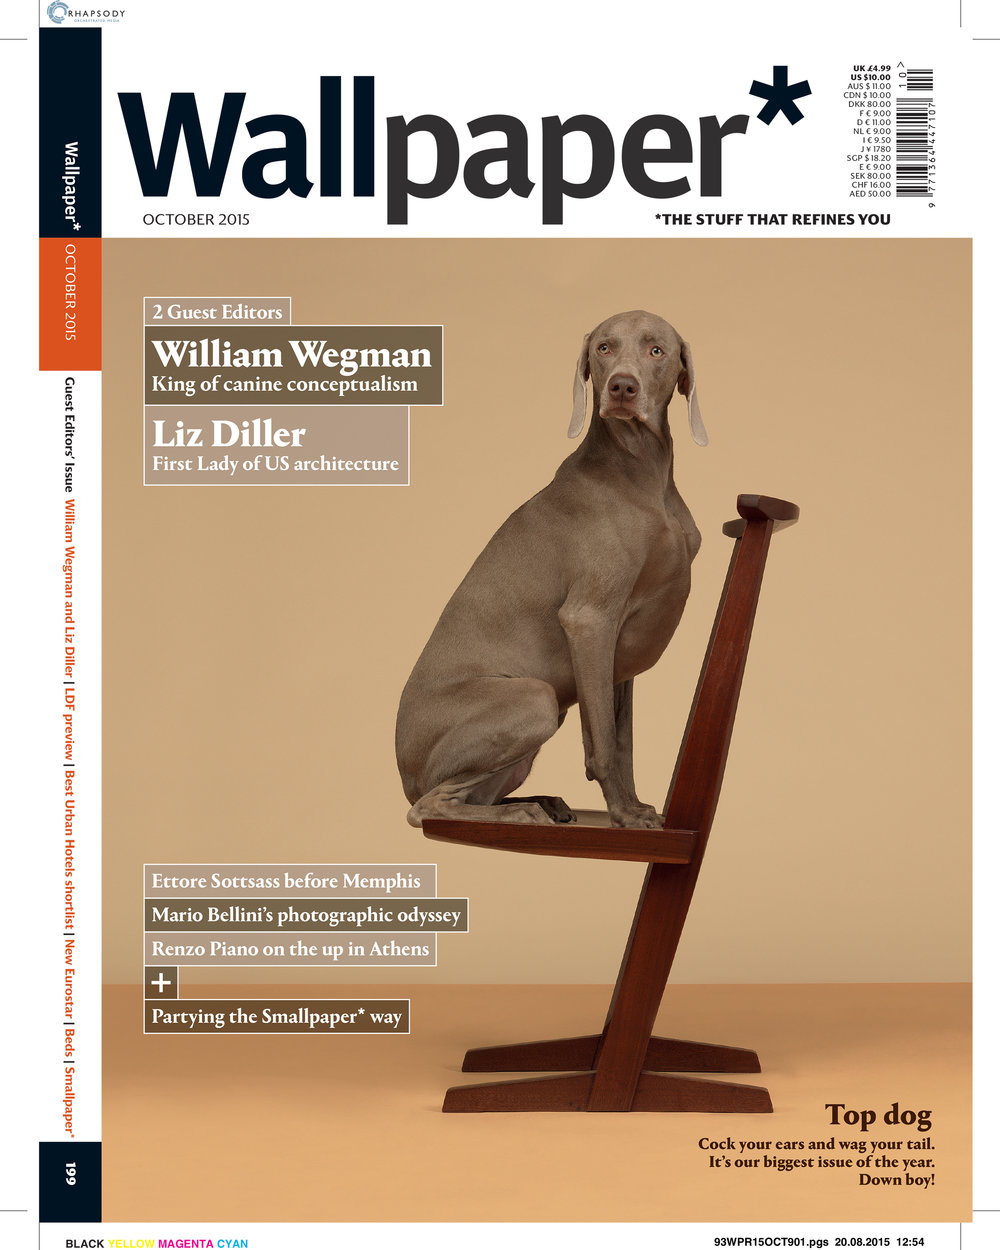 Wallpaper, October 2015